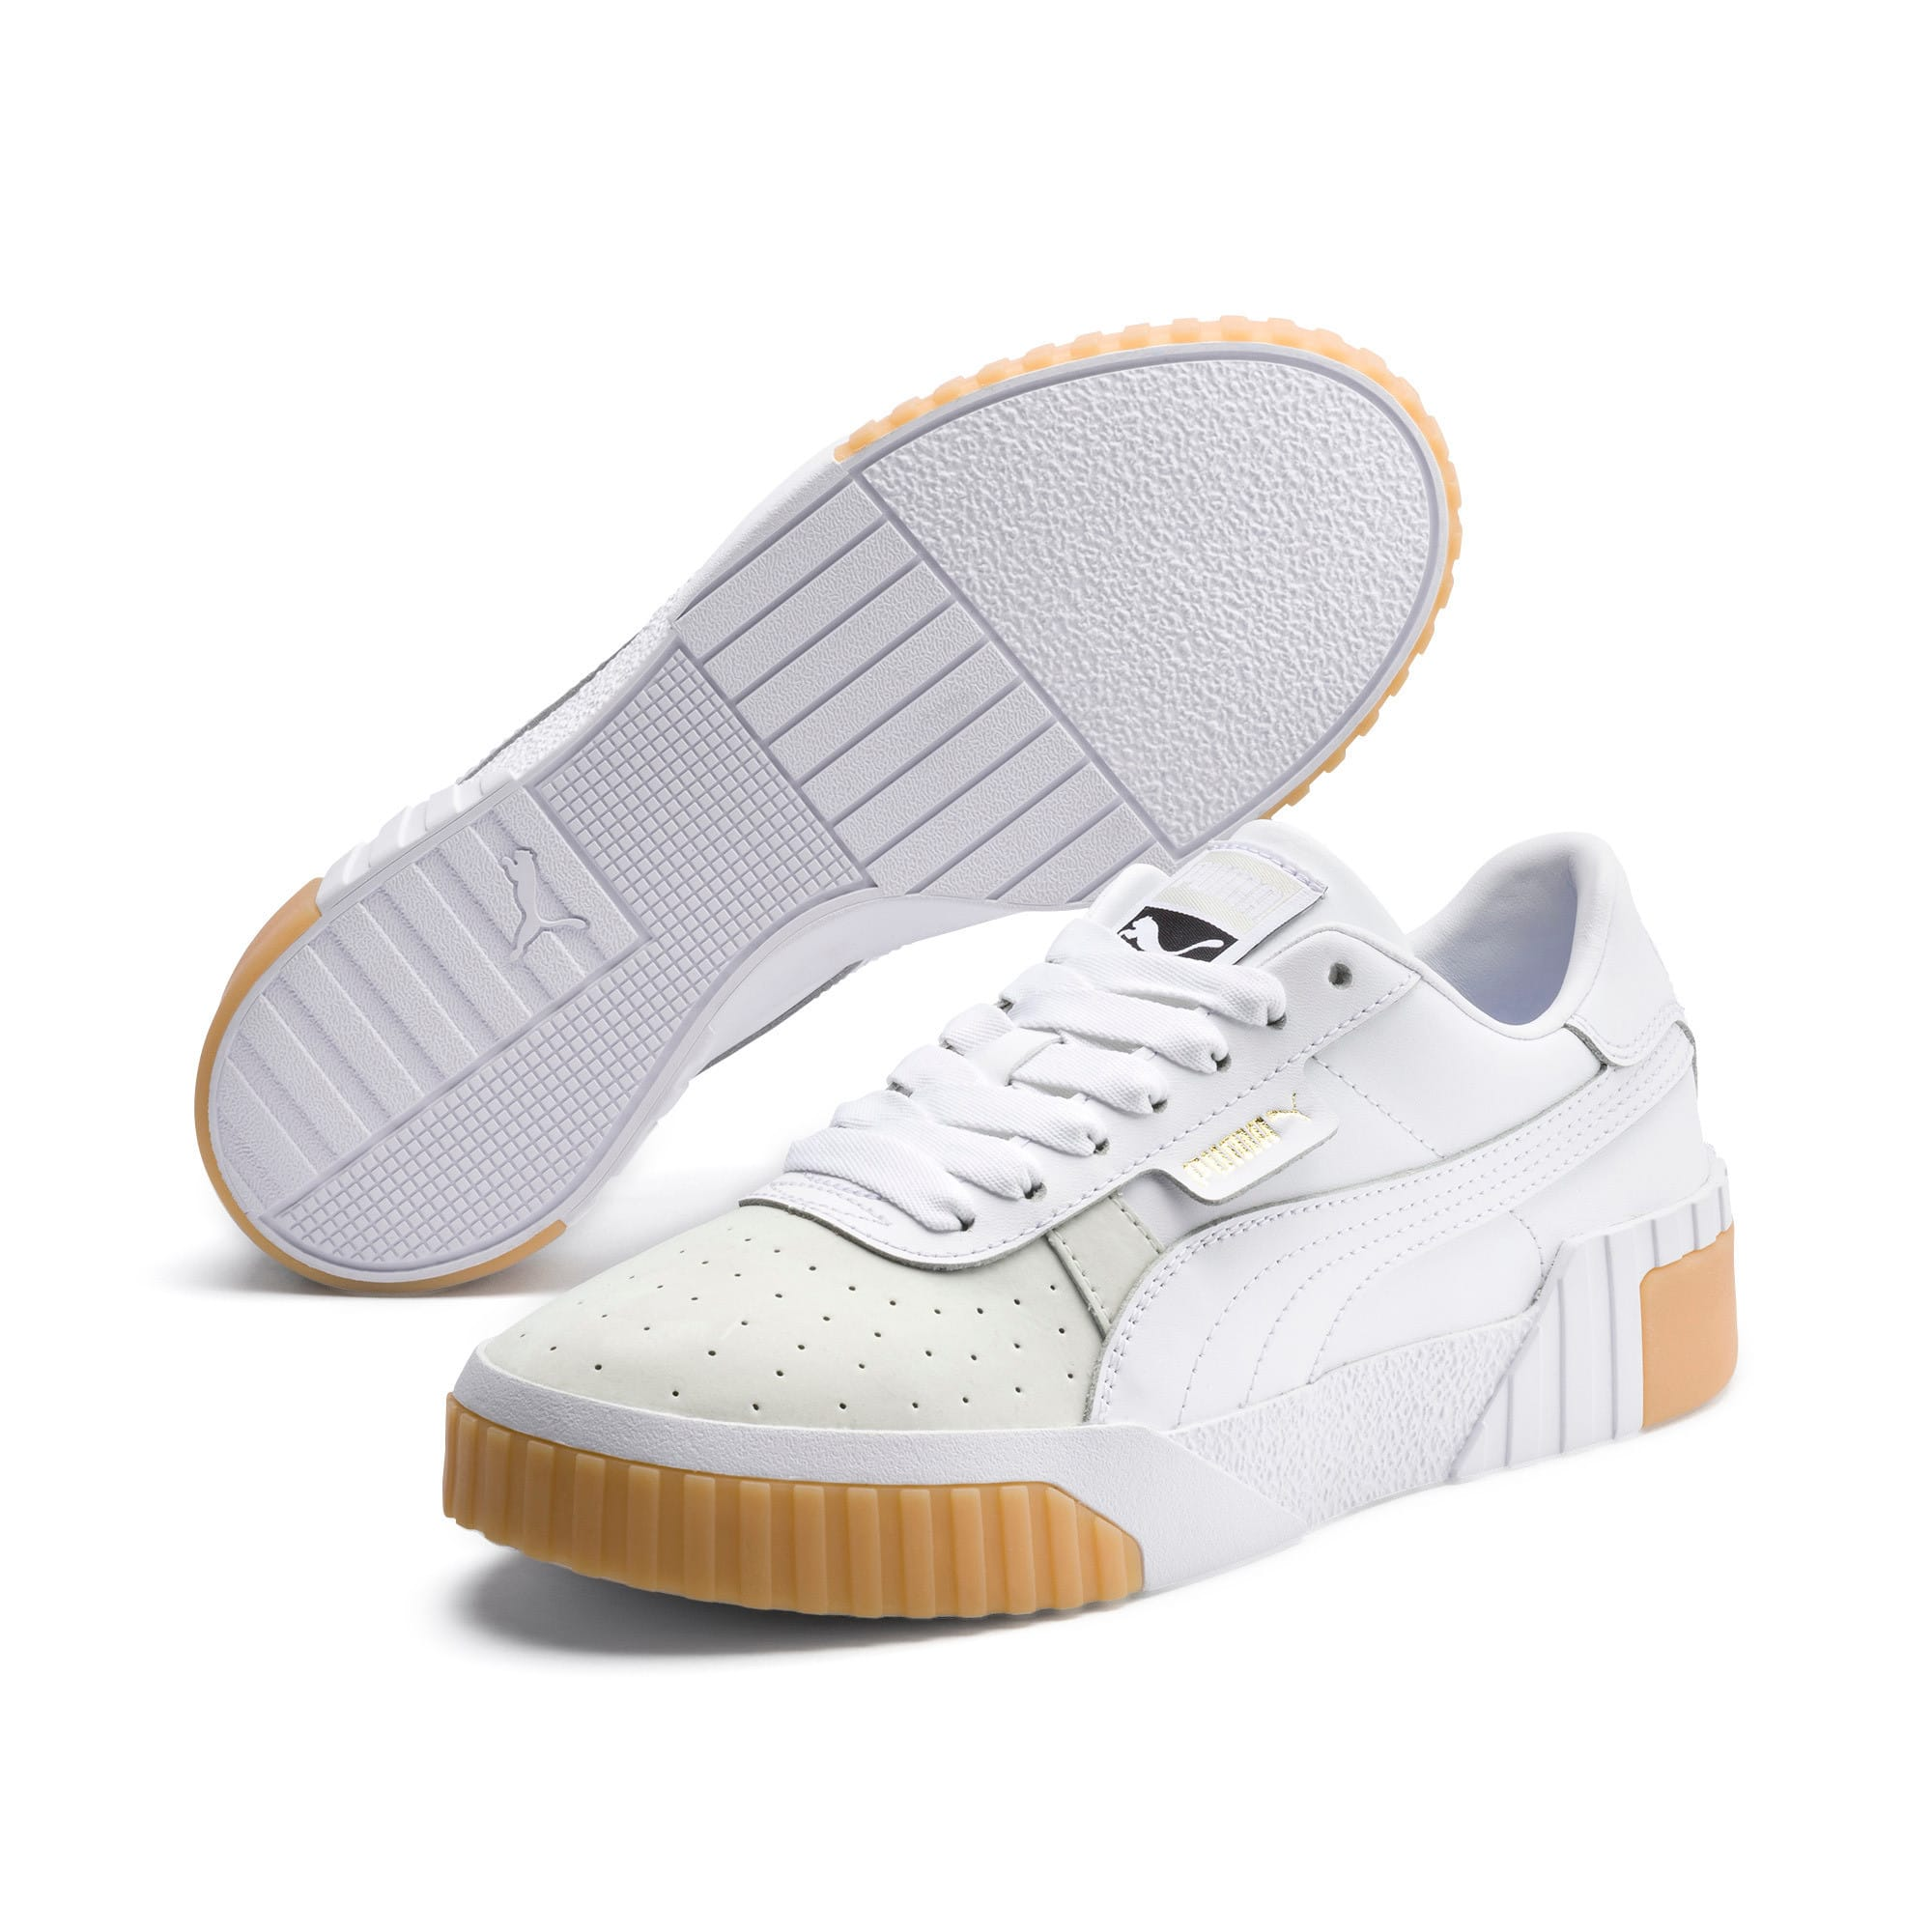 Thumbnail 2 of Zapatillas de mujer Cali Exotic, Puma White-Puma White, medium